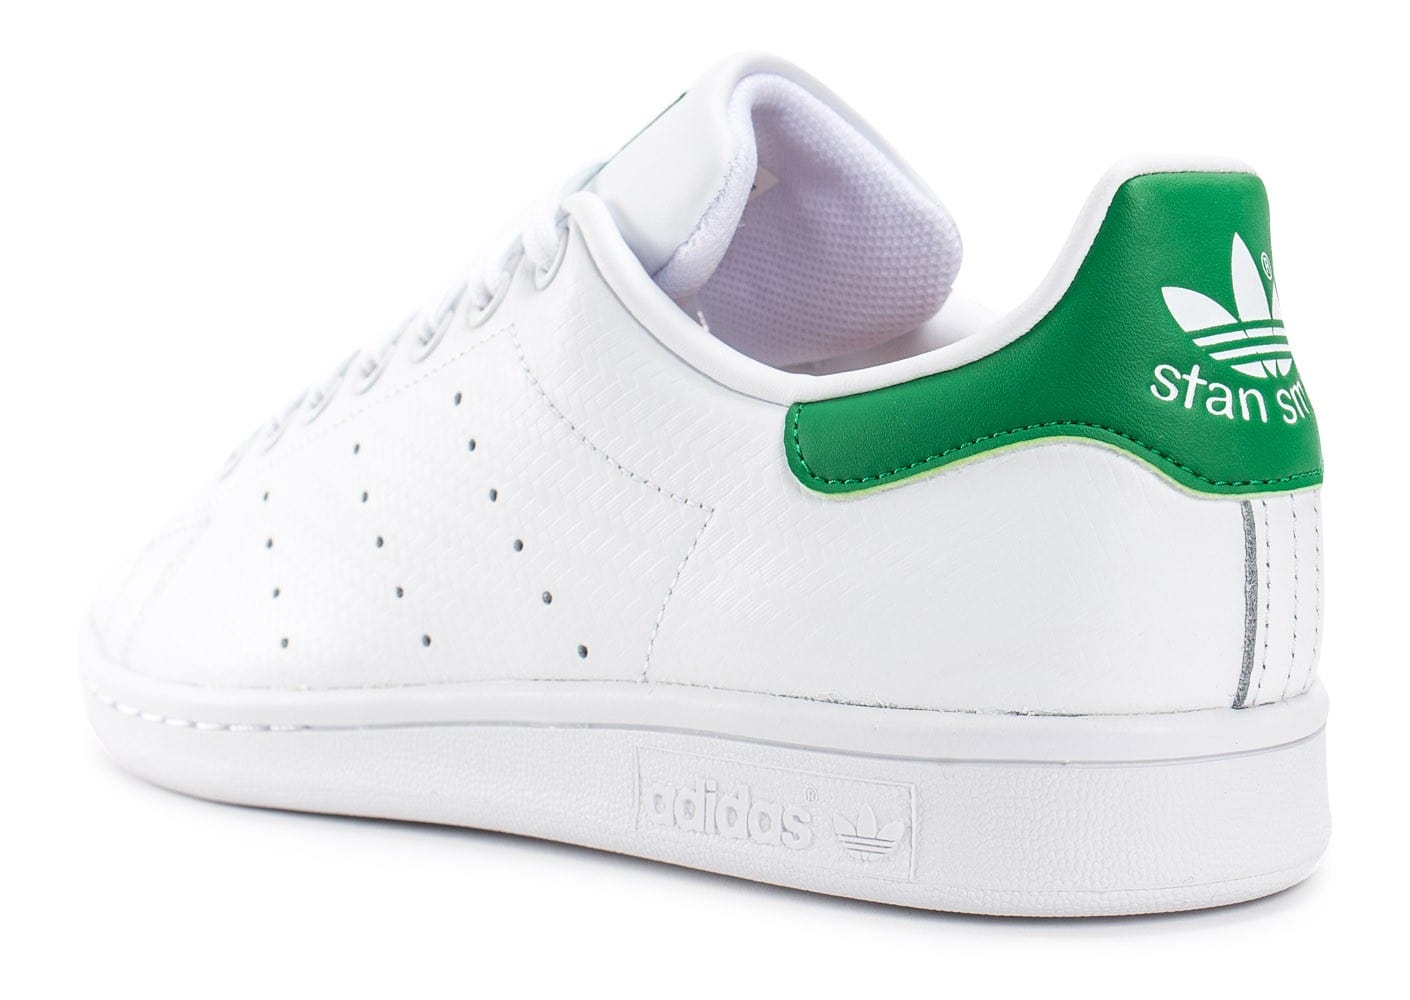 adidas stan smith woven blanche et verte chaussures homme chausport. Black Bedroom Furniture Sets. Home Design Ideas